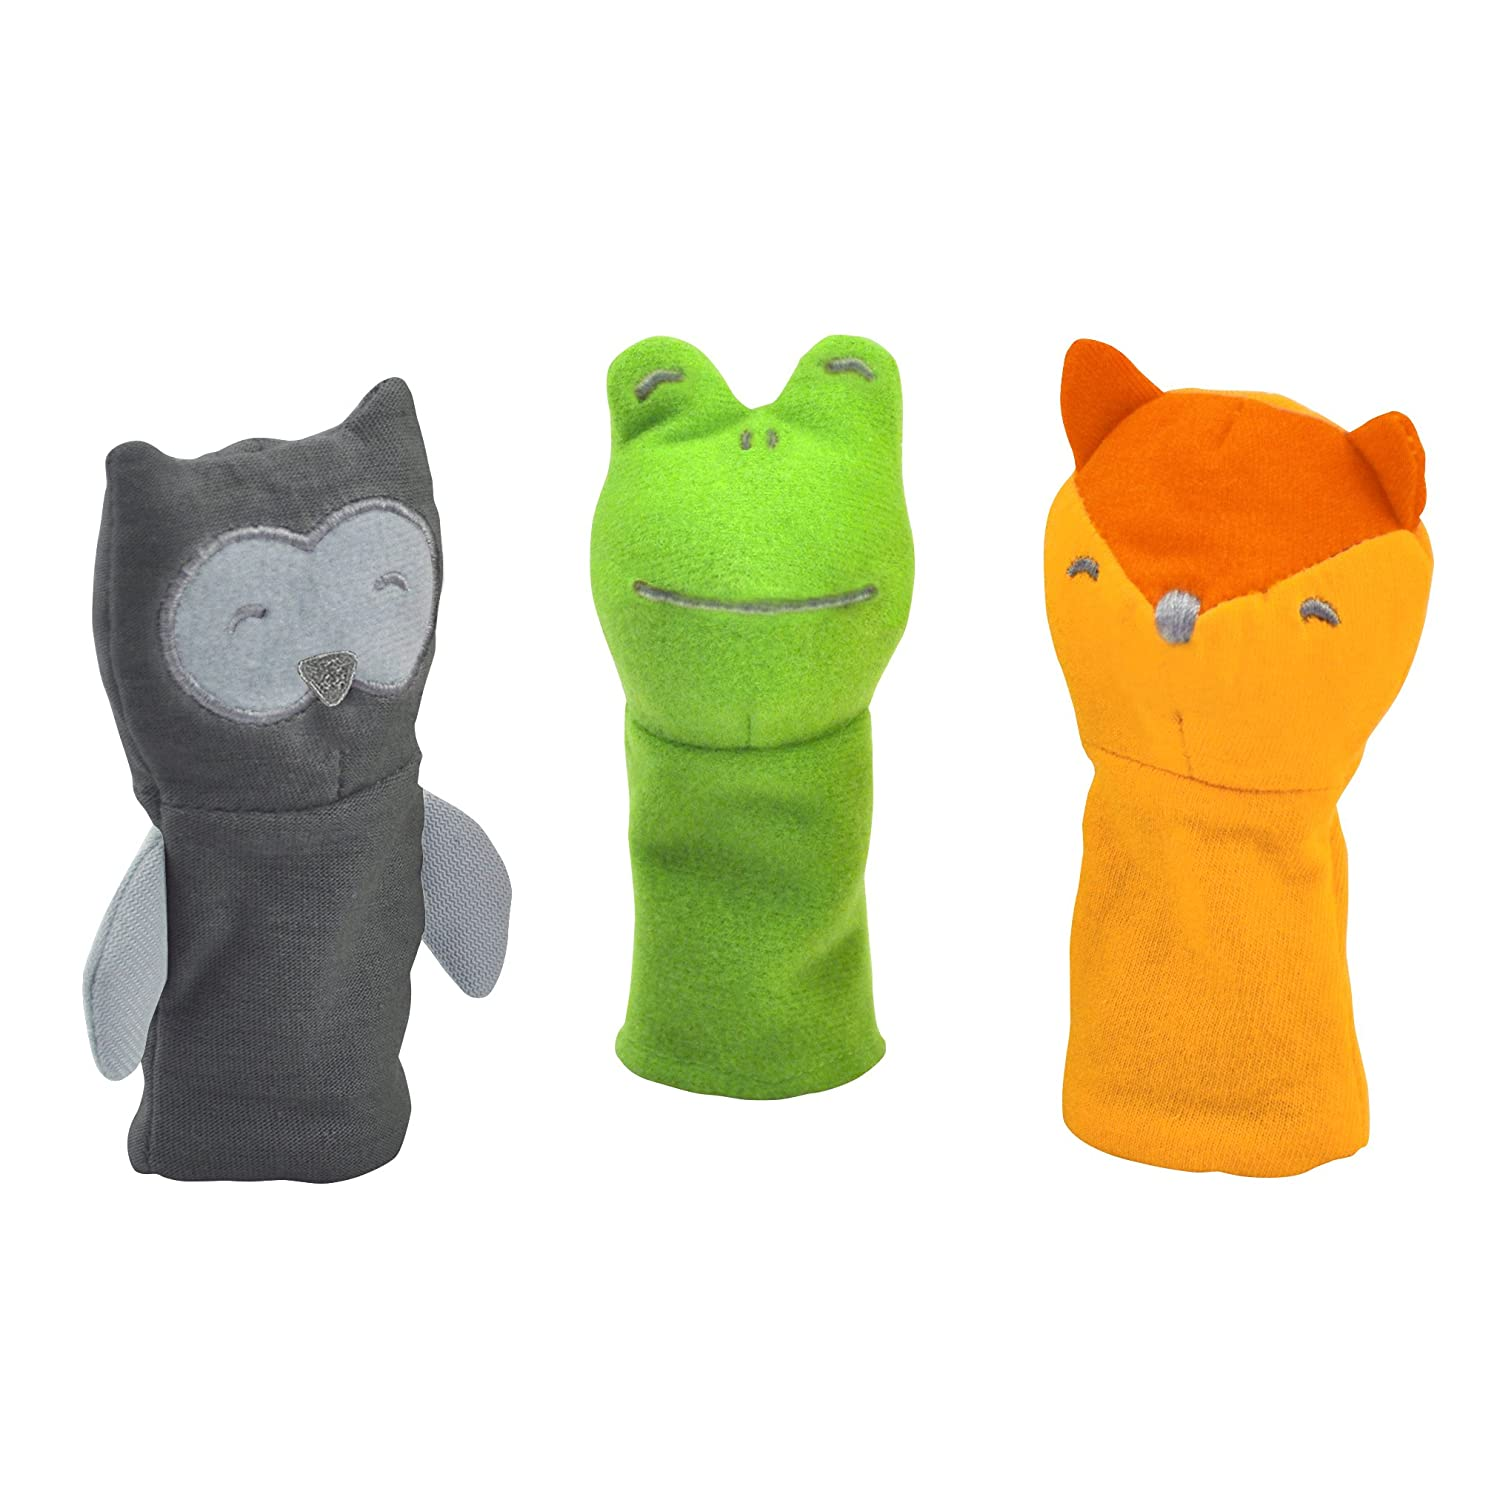 green sprouts Finger Puppets made from Organic Cotton (3 pack)   Encourages whole learning the healthy & natural way   Grows with baby, Soft & flexible, Organic 210090-906-33